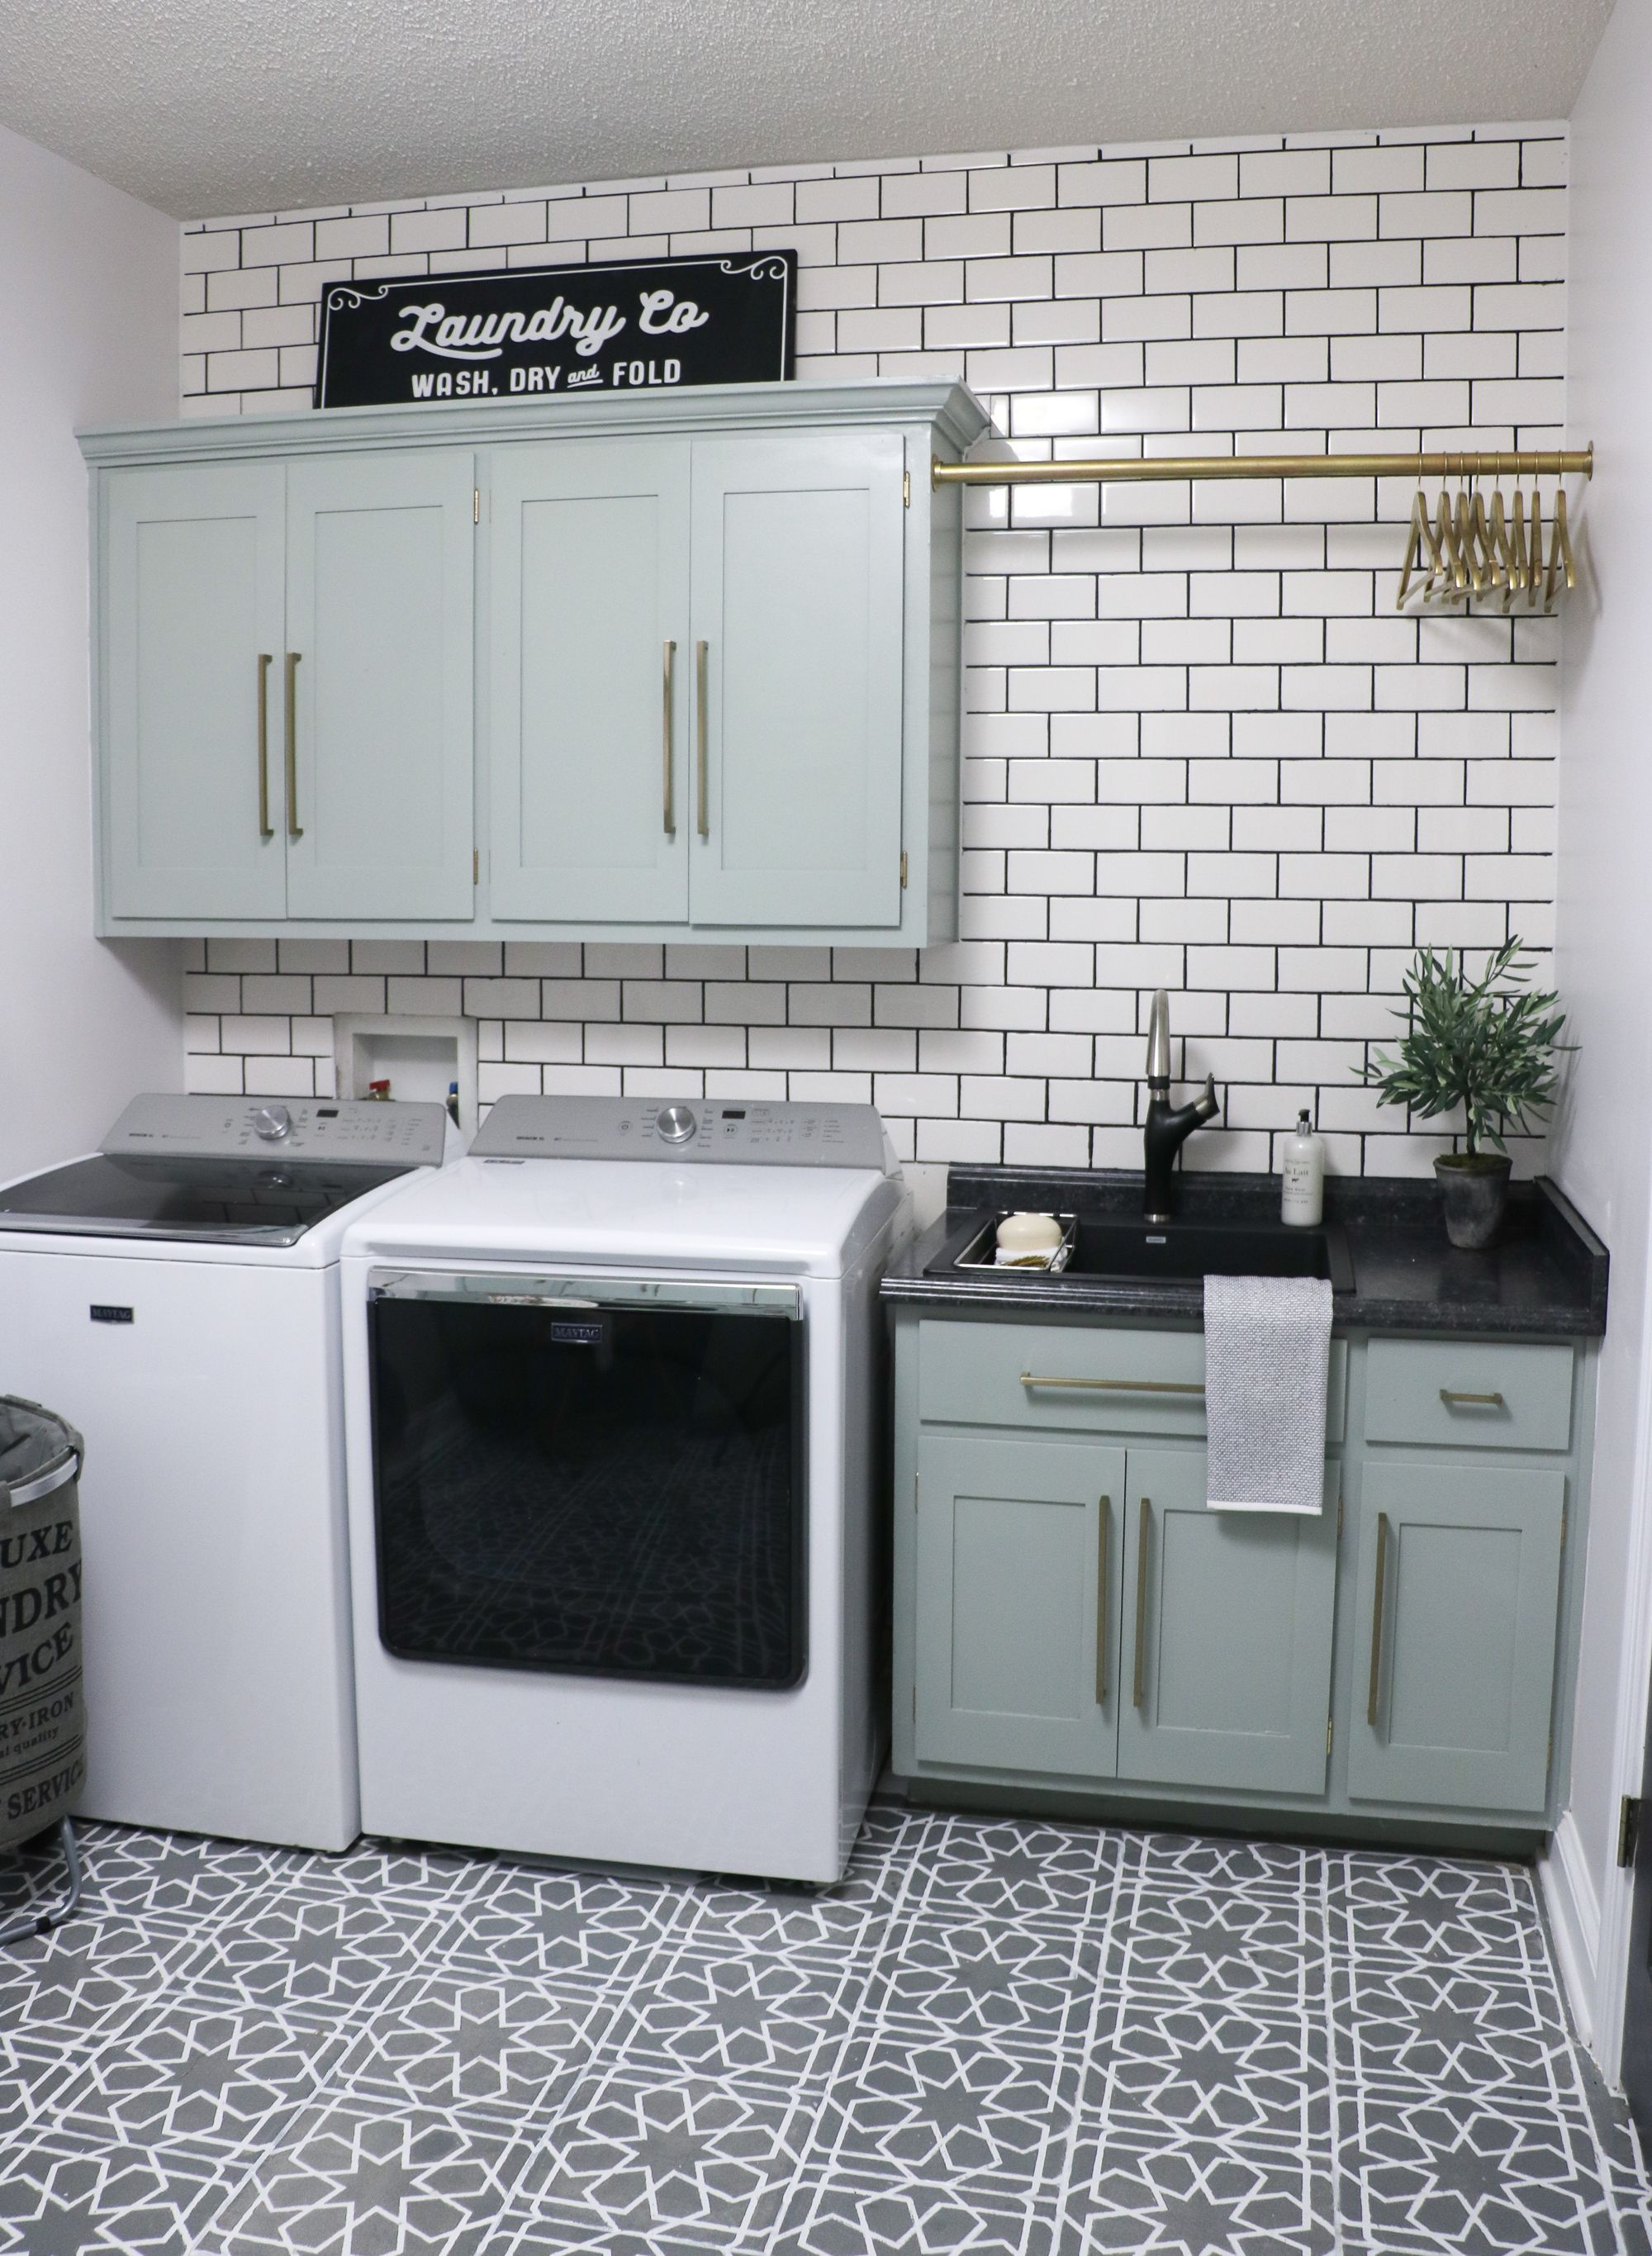 Diy Laundry Room Makeover Love The Painted Floors And Tiles Walls